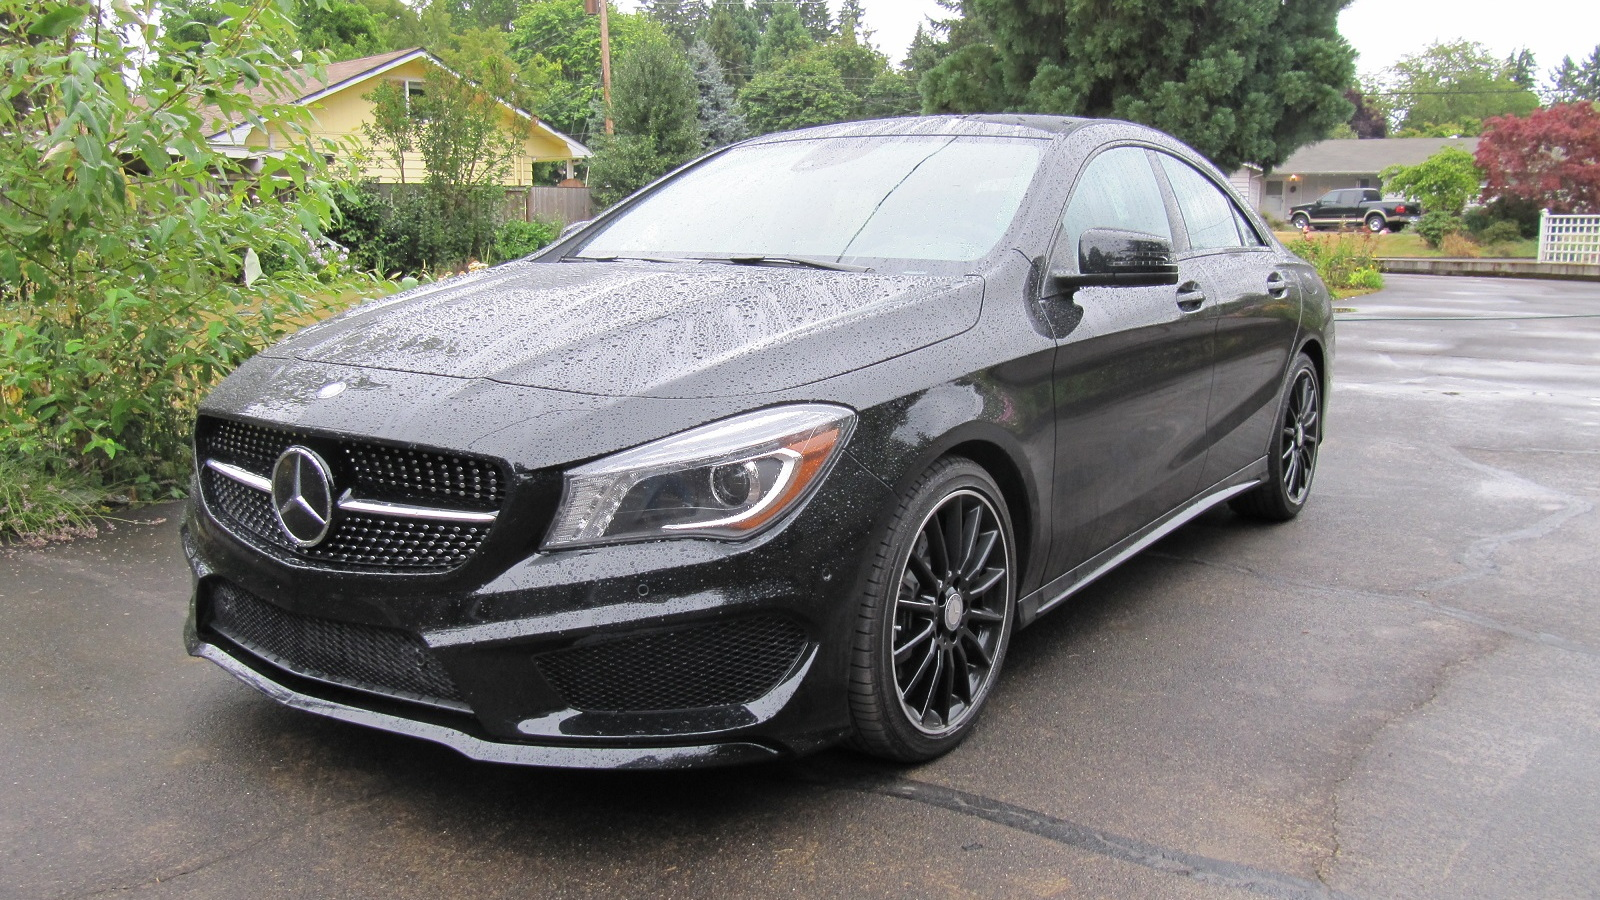 2014 Mercedes-Benz CLA 250, test drive in Oregon, July 2014